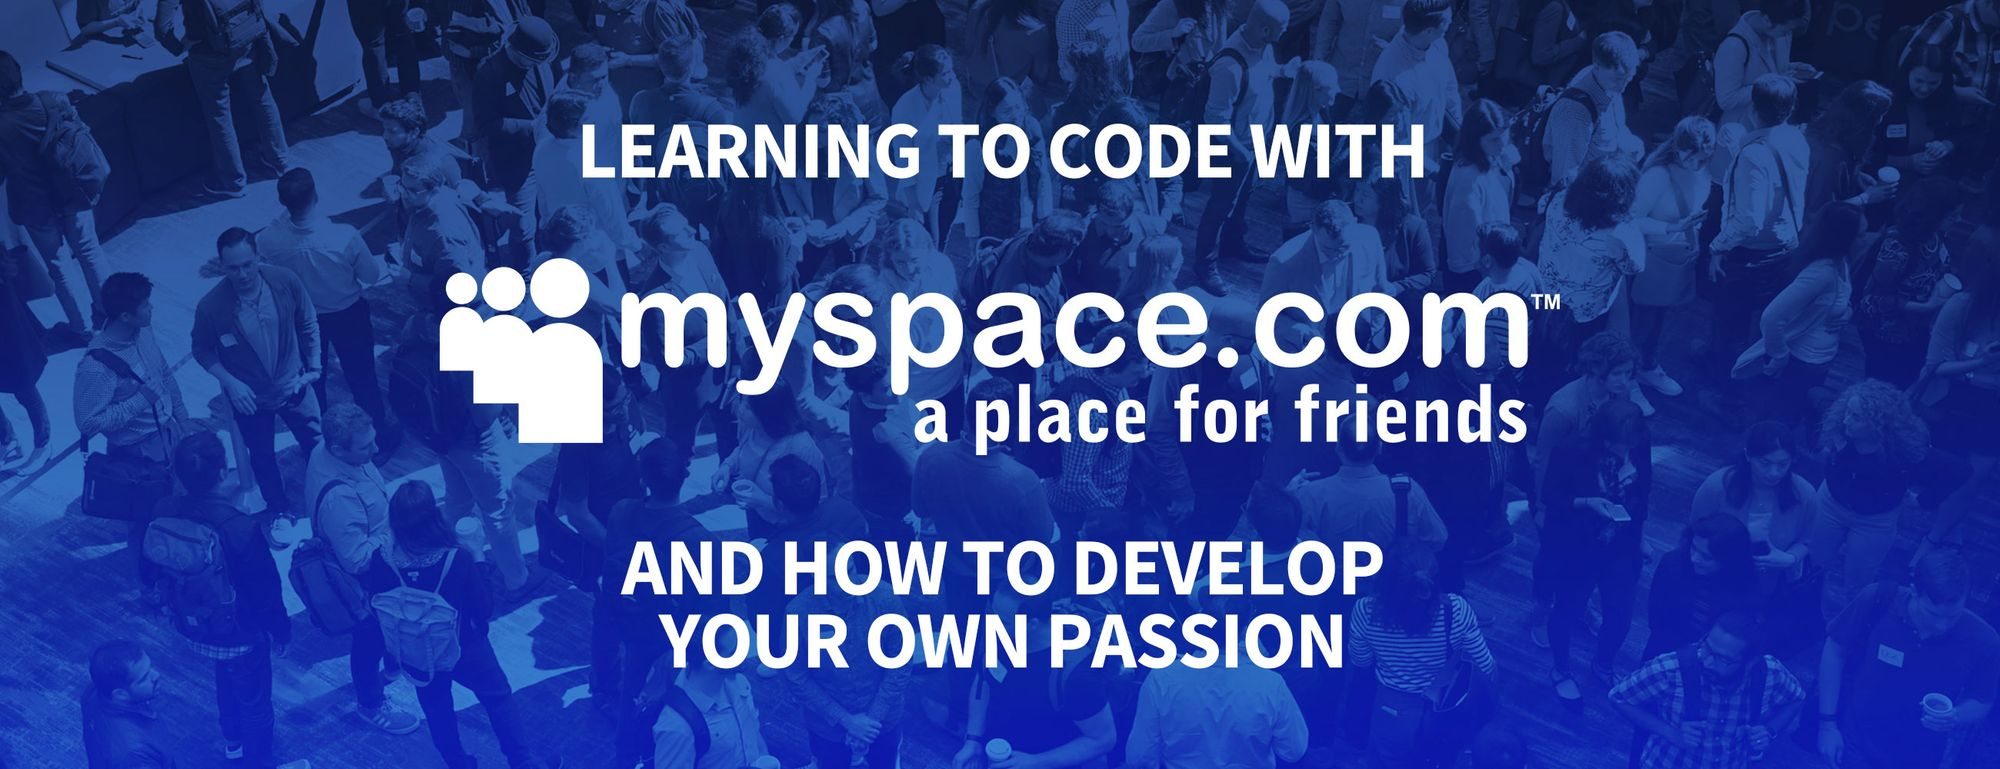 How MySpace Taught Me How to Code and Where You Should Look to Develop Your Passion